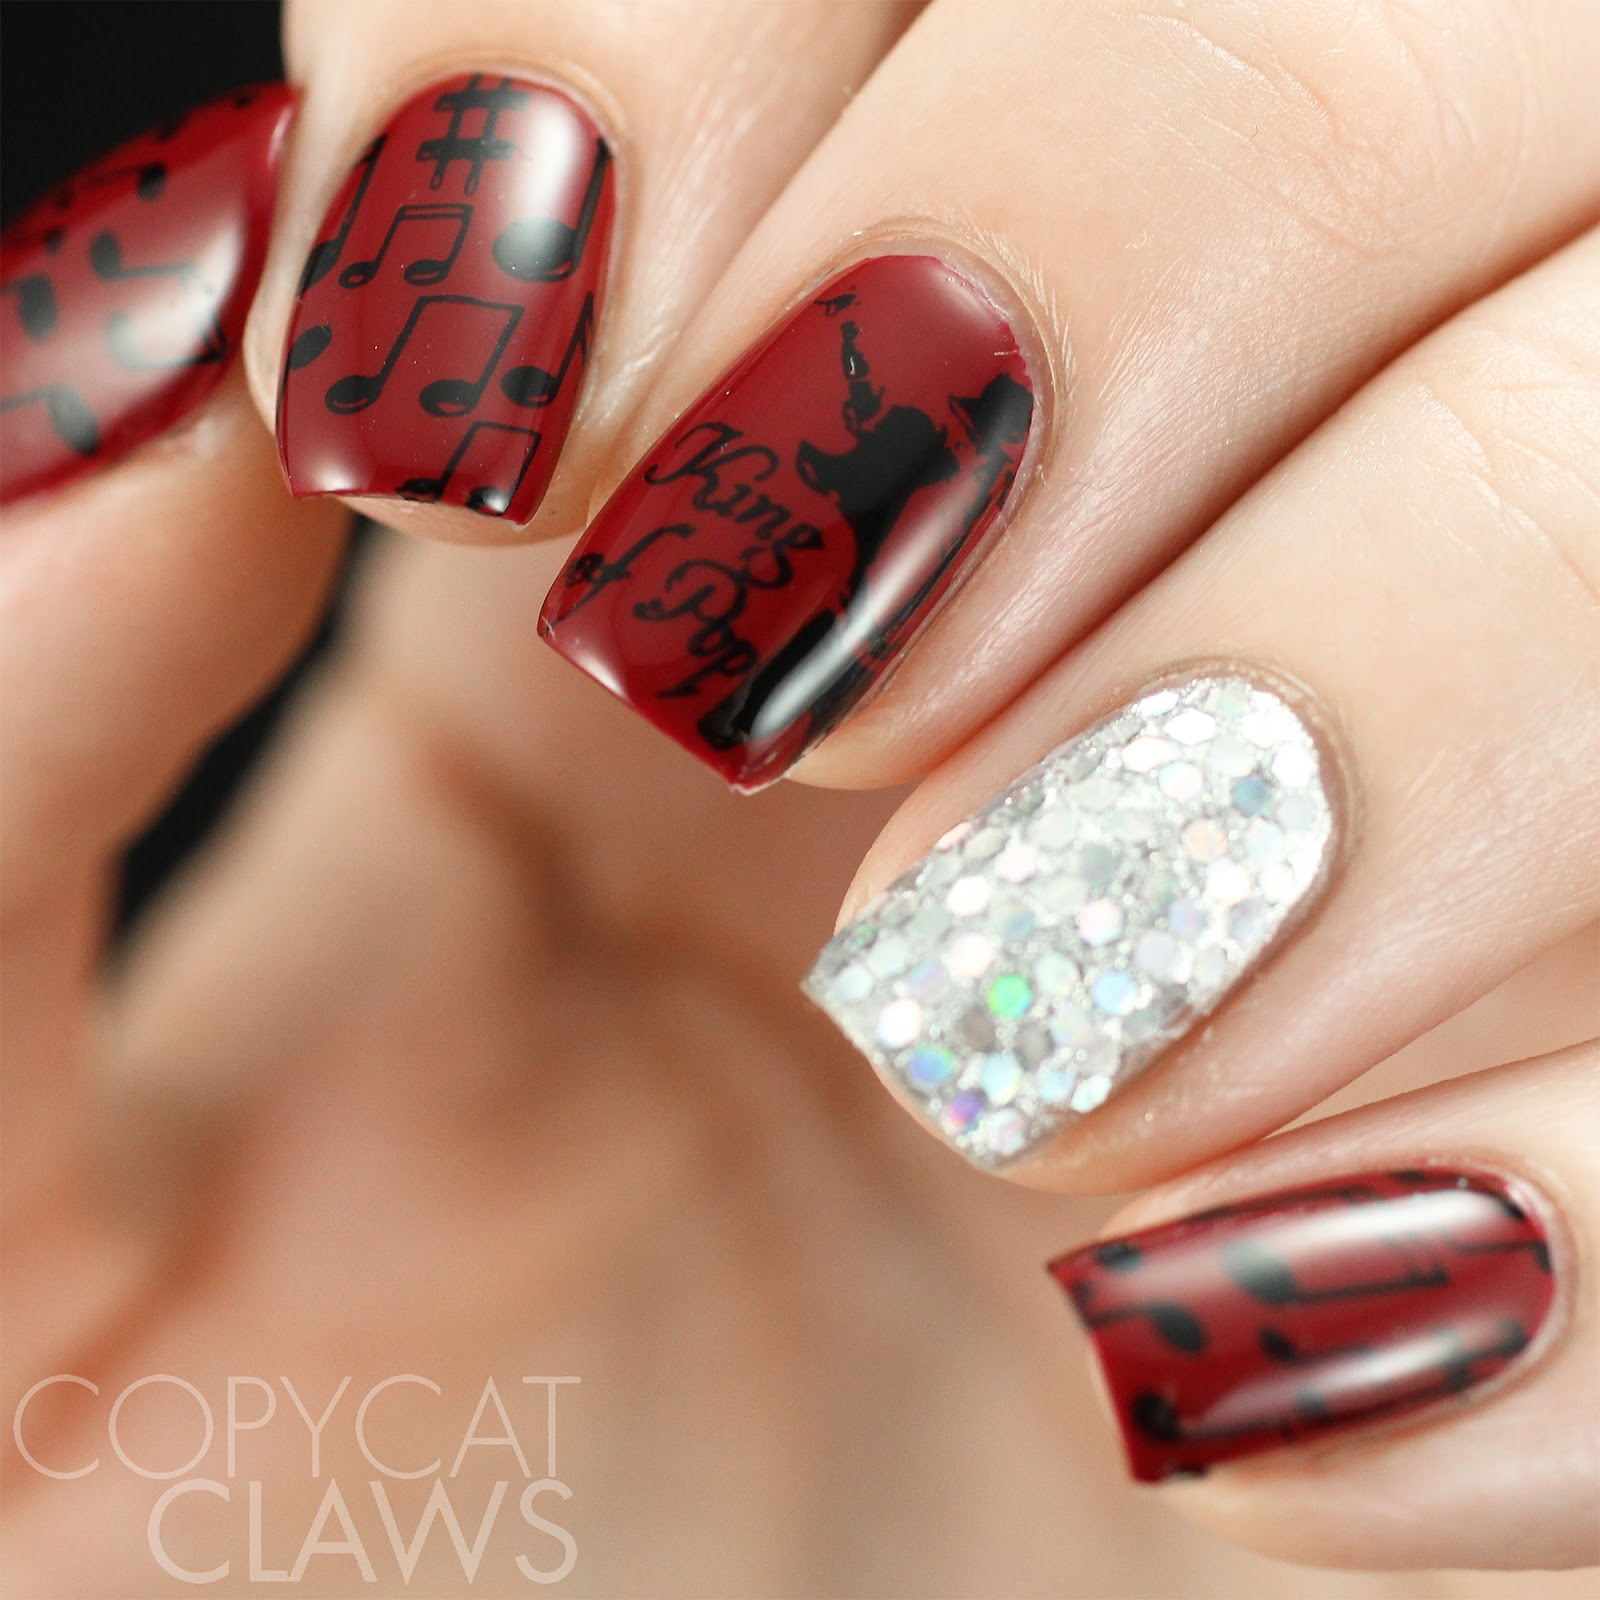 Copycat claws june 2017 michael jackson nail stamping prinsesfo Gallery